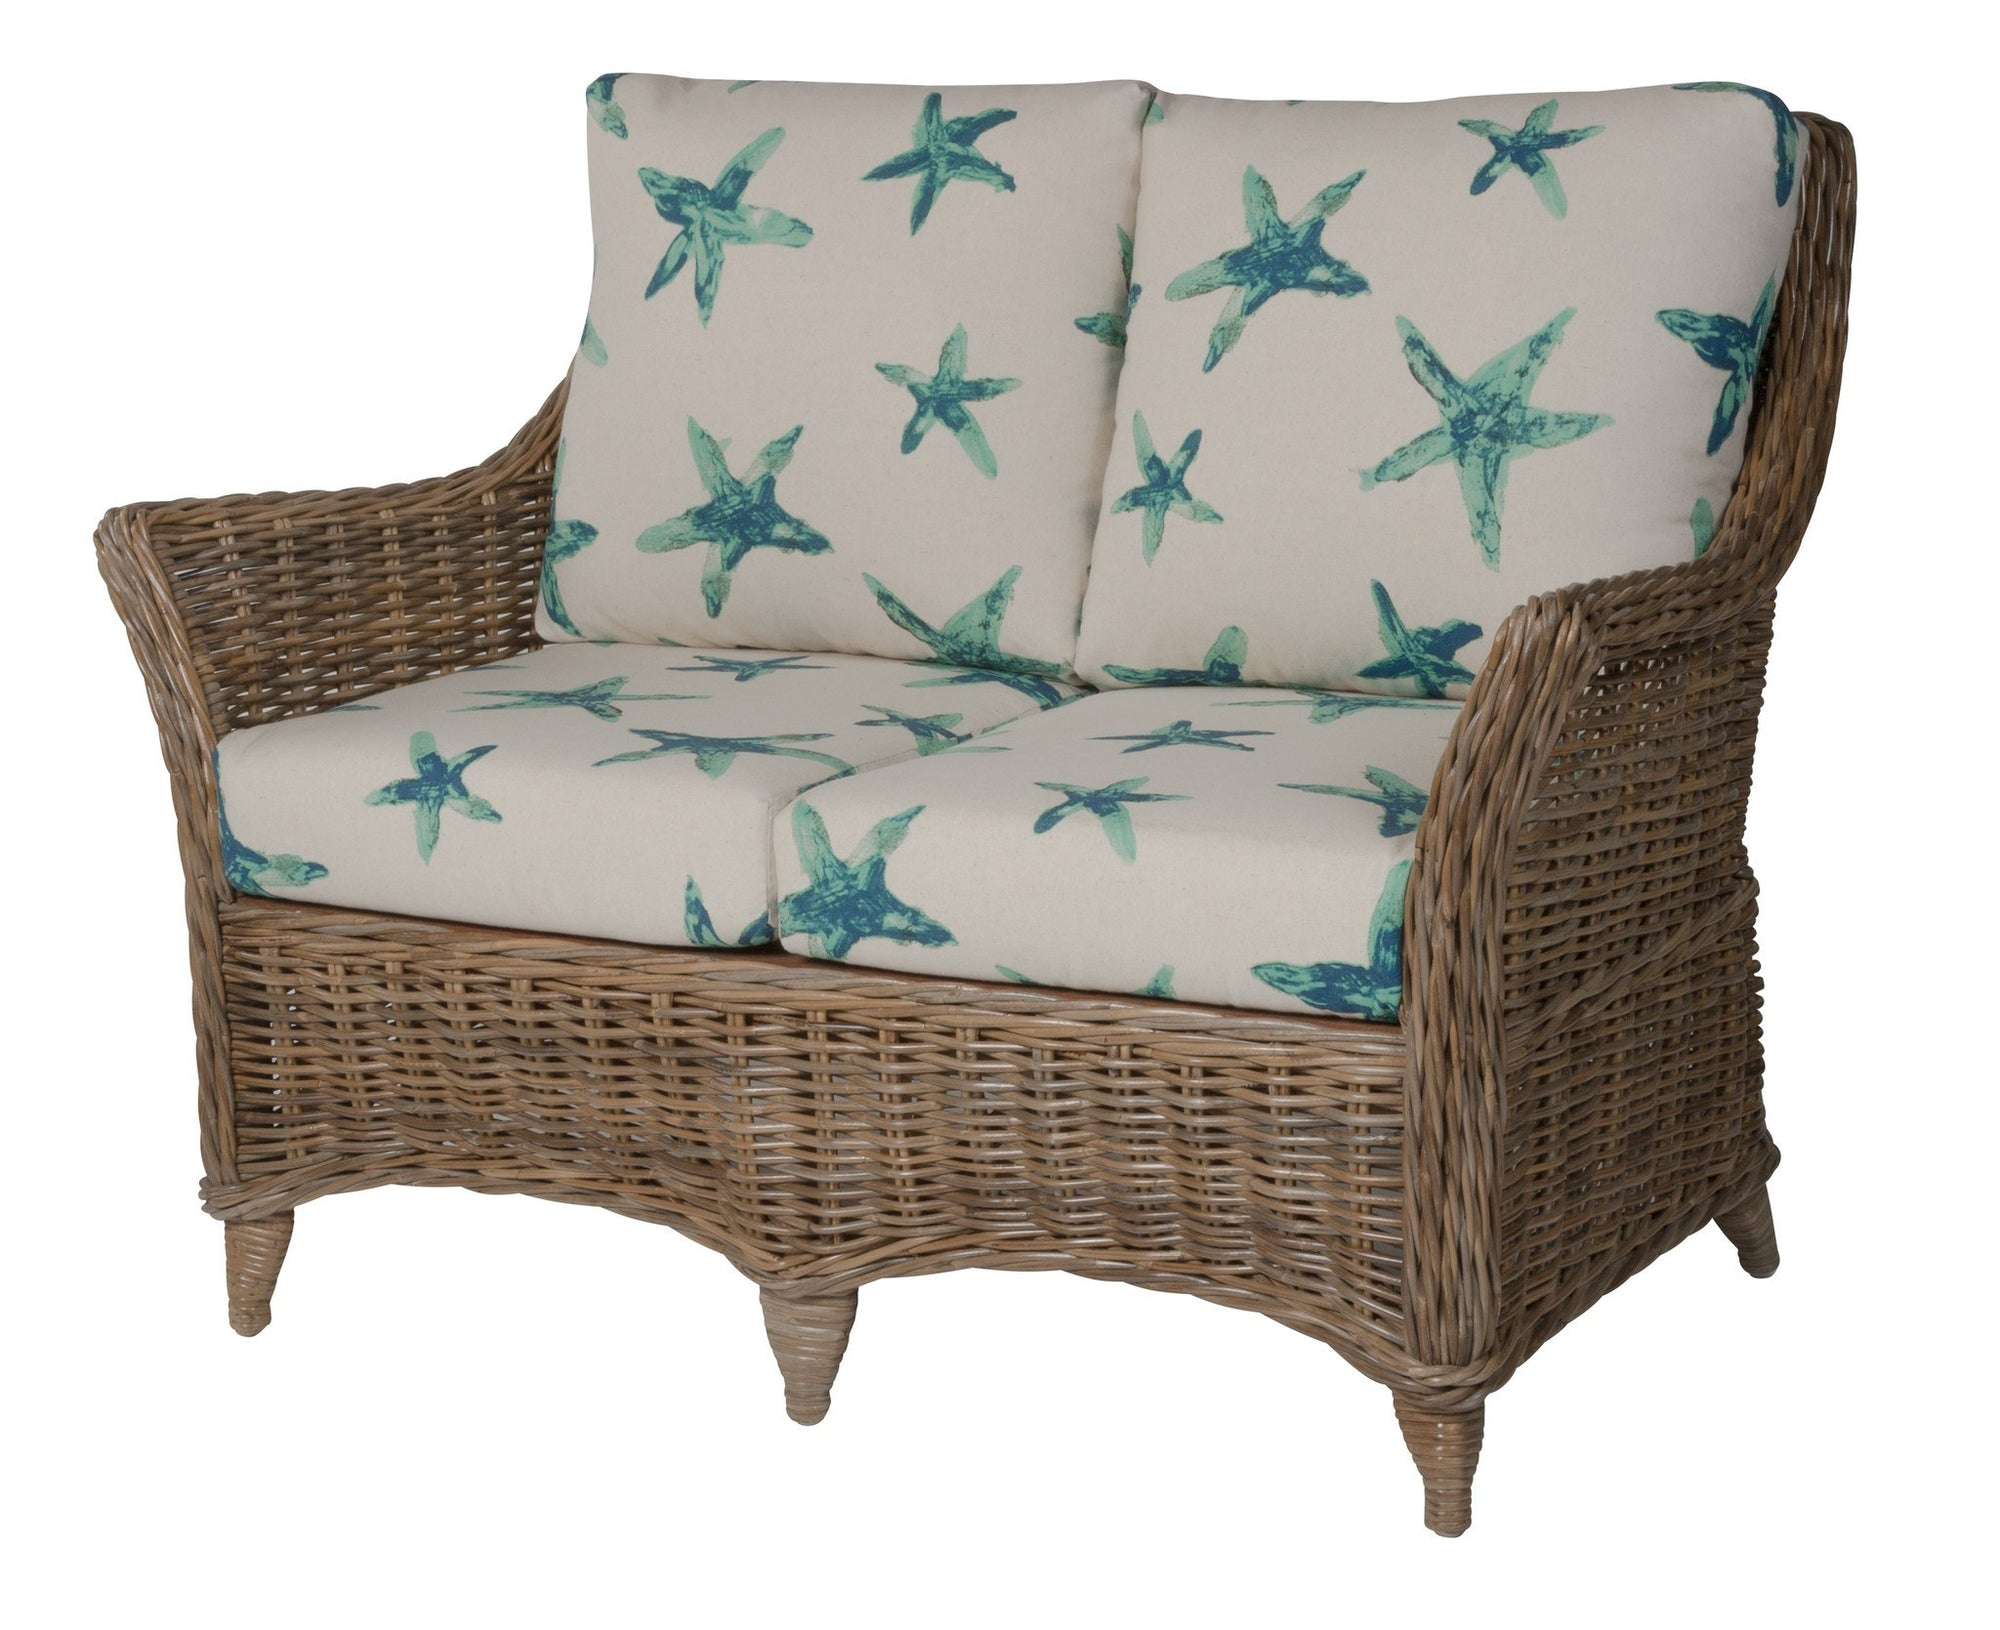 Designer Wicker & Rattan By Tribor Conservatory Loveseat by Designer Wicker from Tribor Loveseat - Rattan Imports